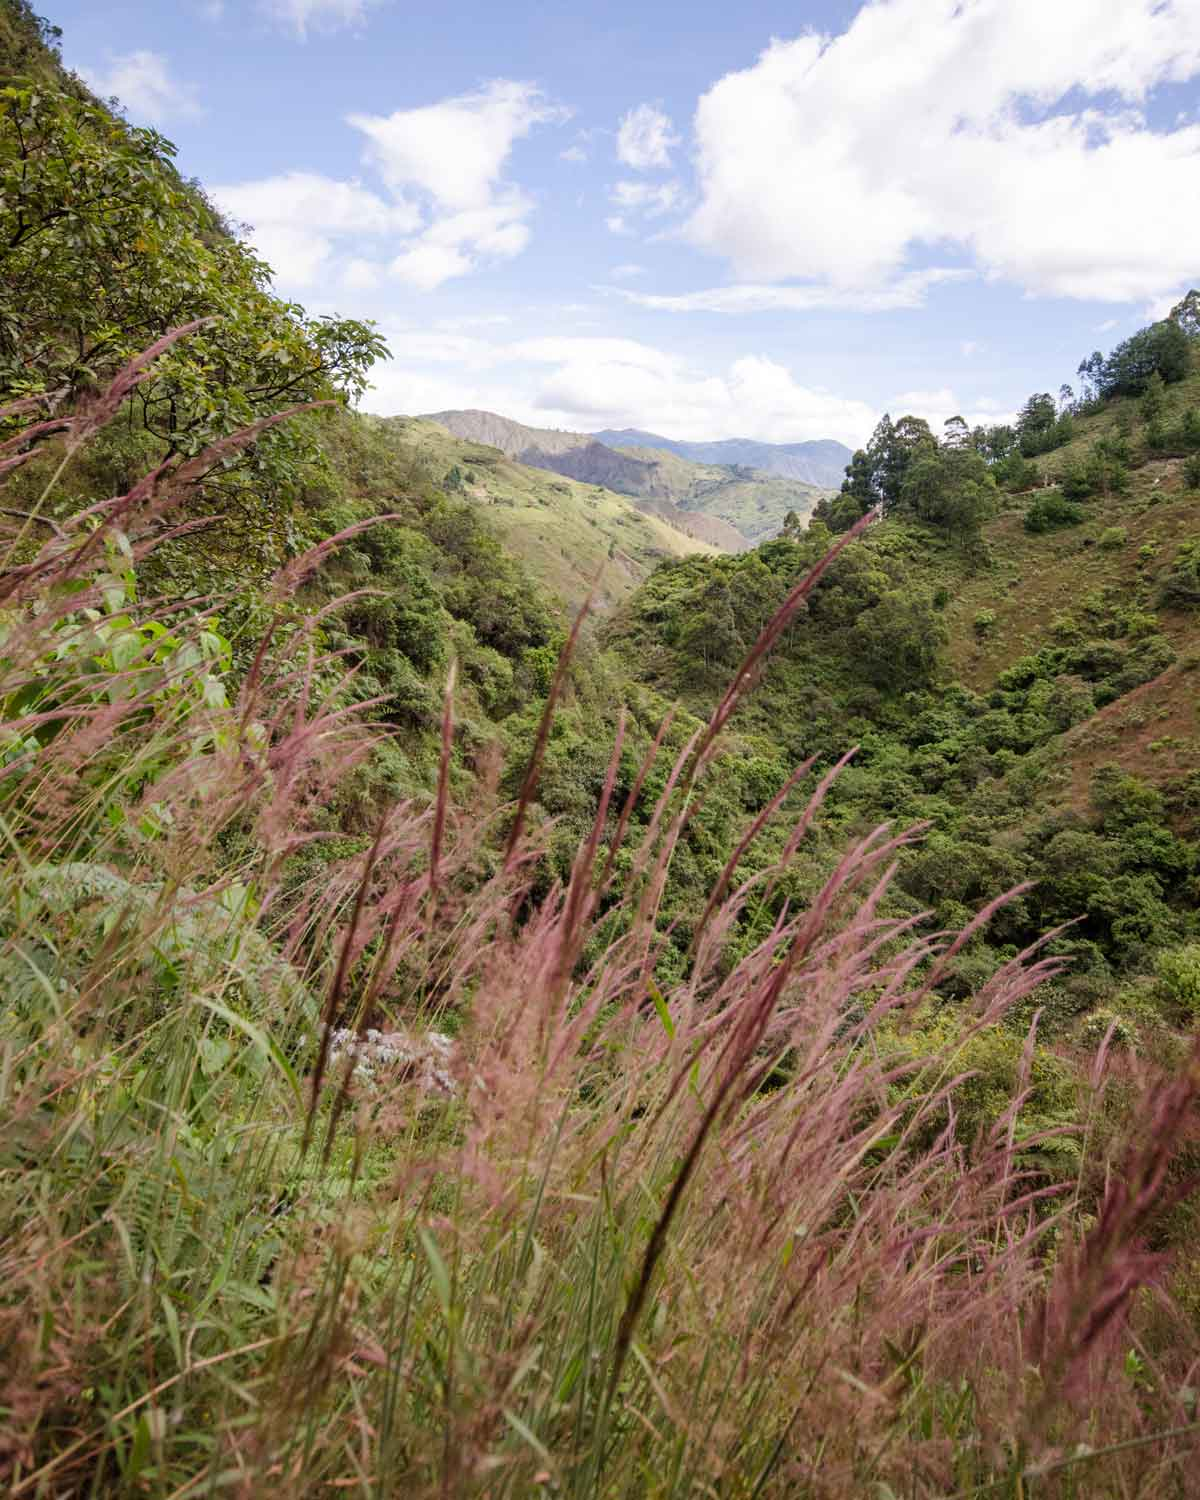 Yaragua paints the Vilcabamba countryside a pinkish burgundy hue.